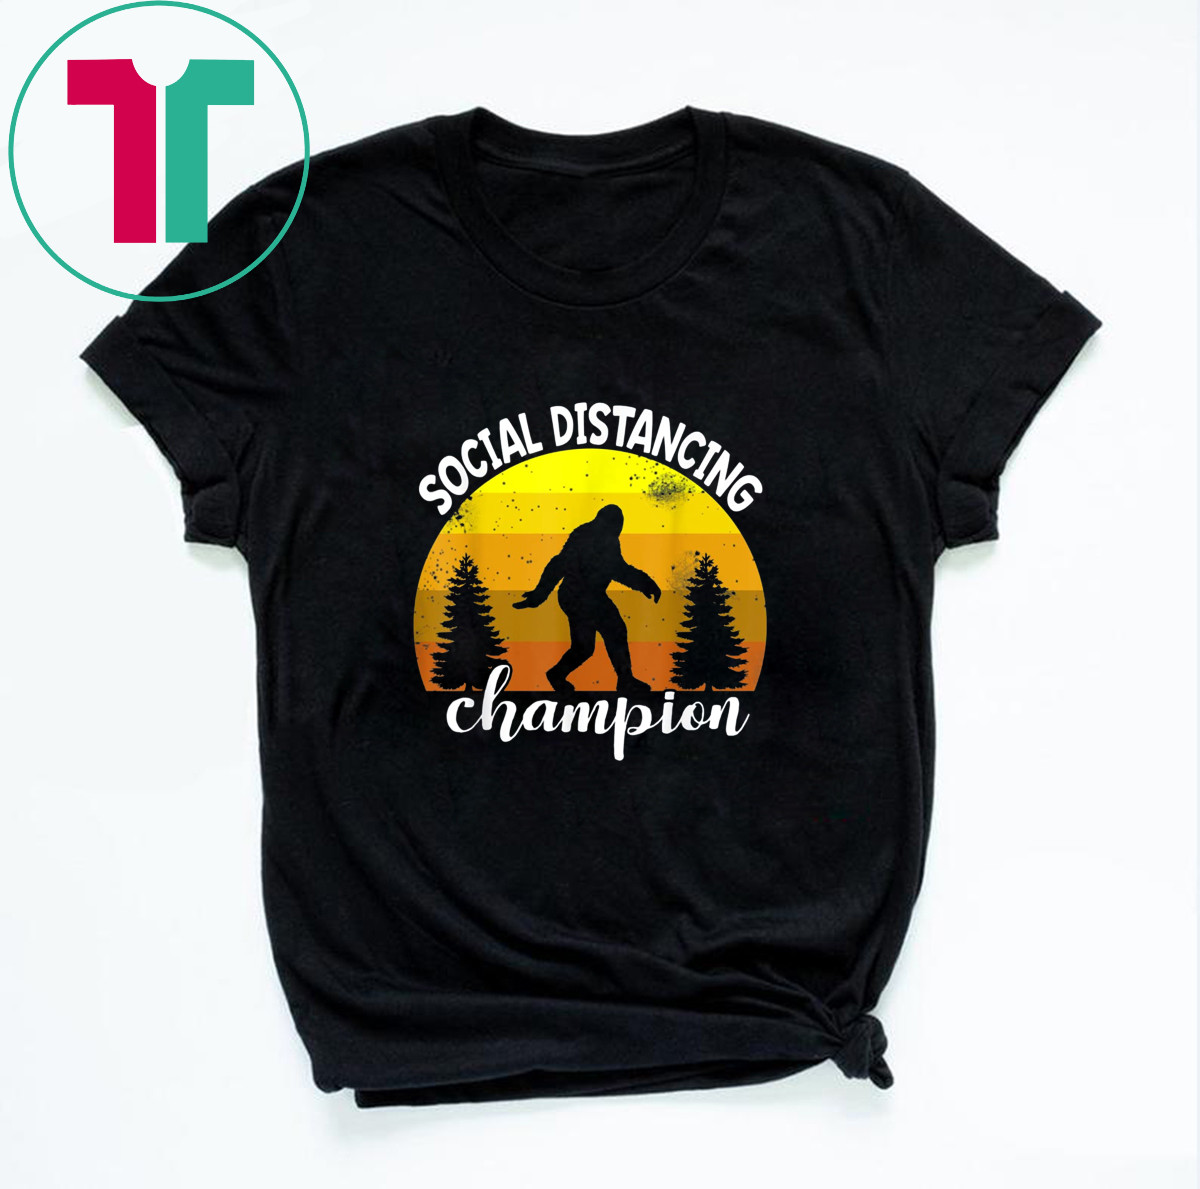 BigFoot Sasquatch Conspiracy Social Distance Champion T-Shirt